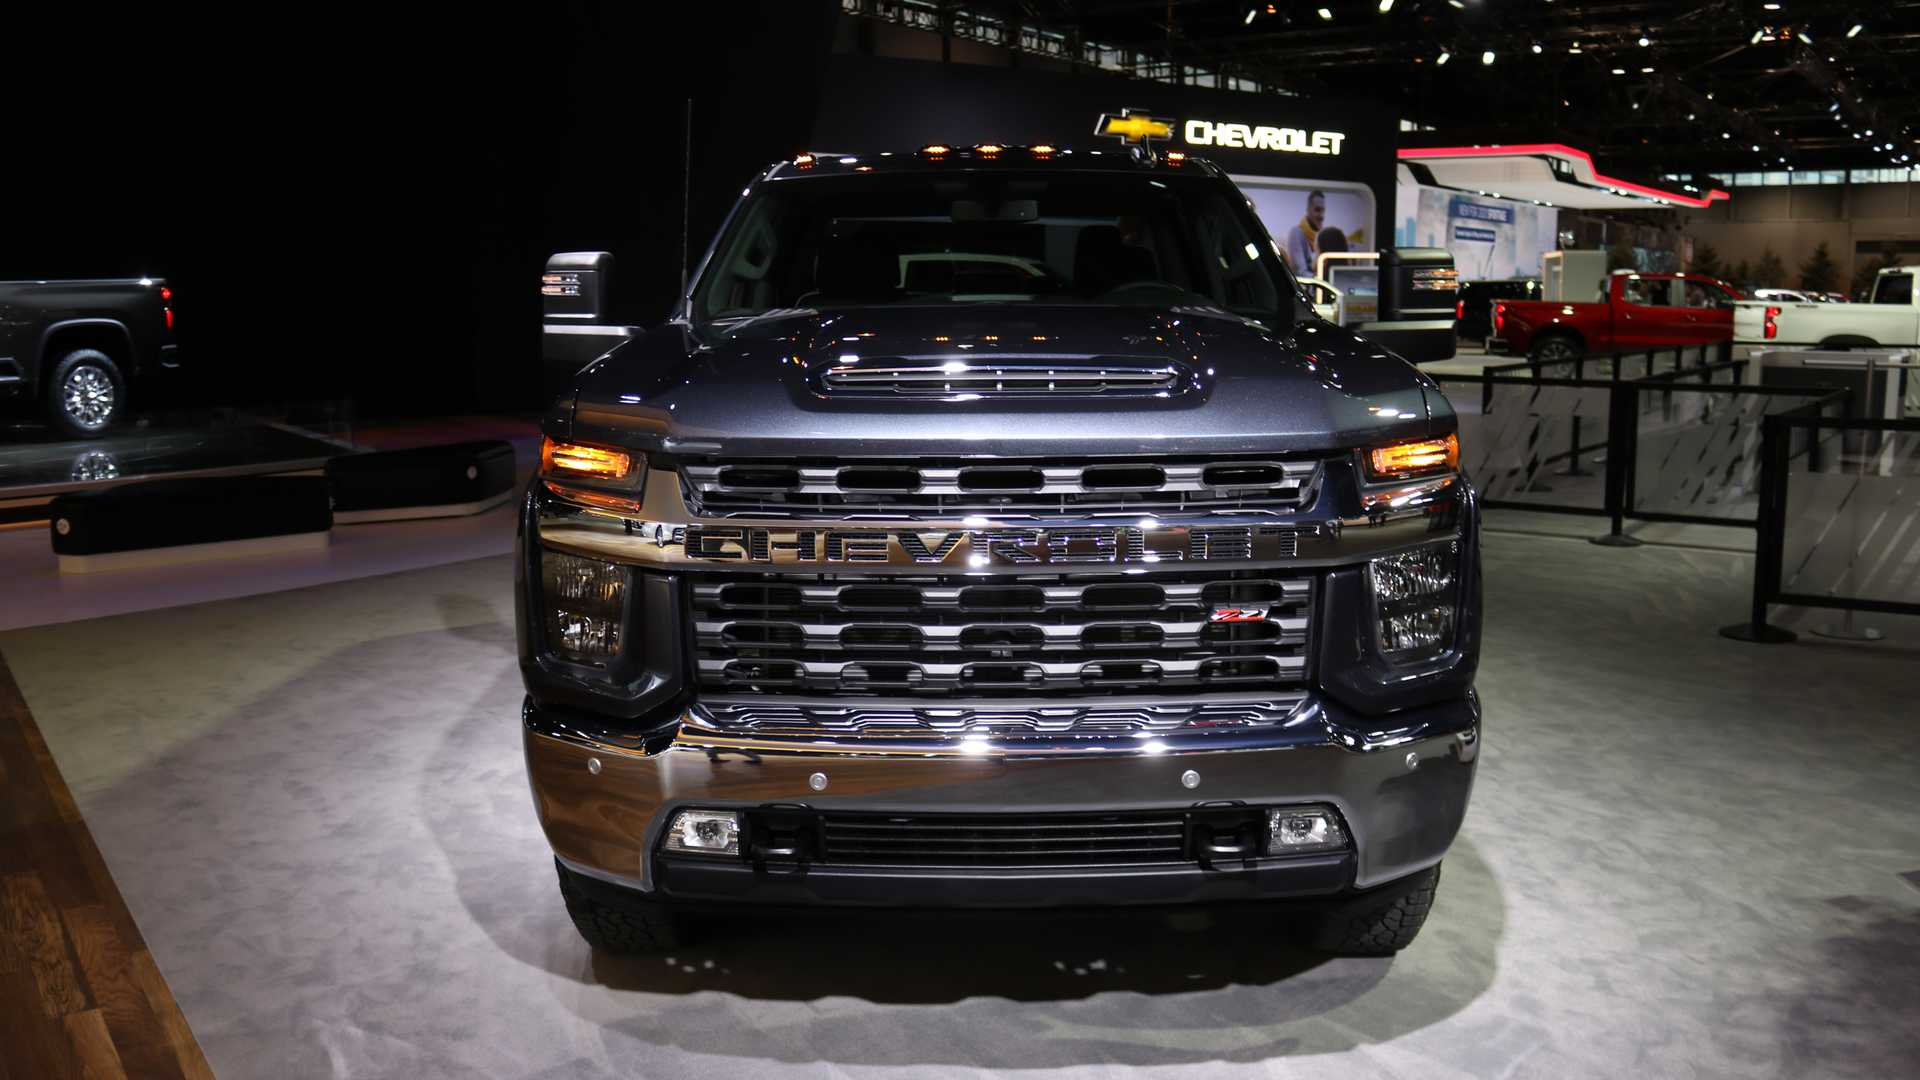 2020 Chevy Silverado Hd Unveiled, Getting New V8 And Gearbox 2022 Chevy Silverado 2500Hd Colors, Changes, Engines